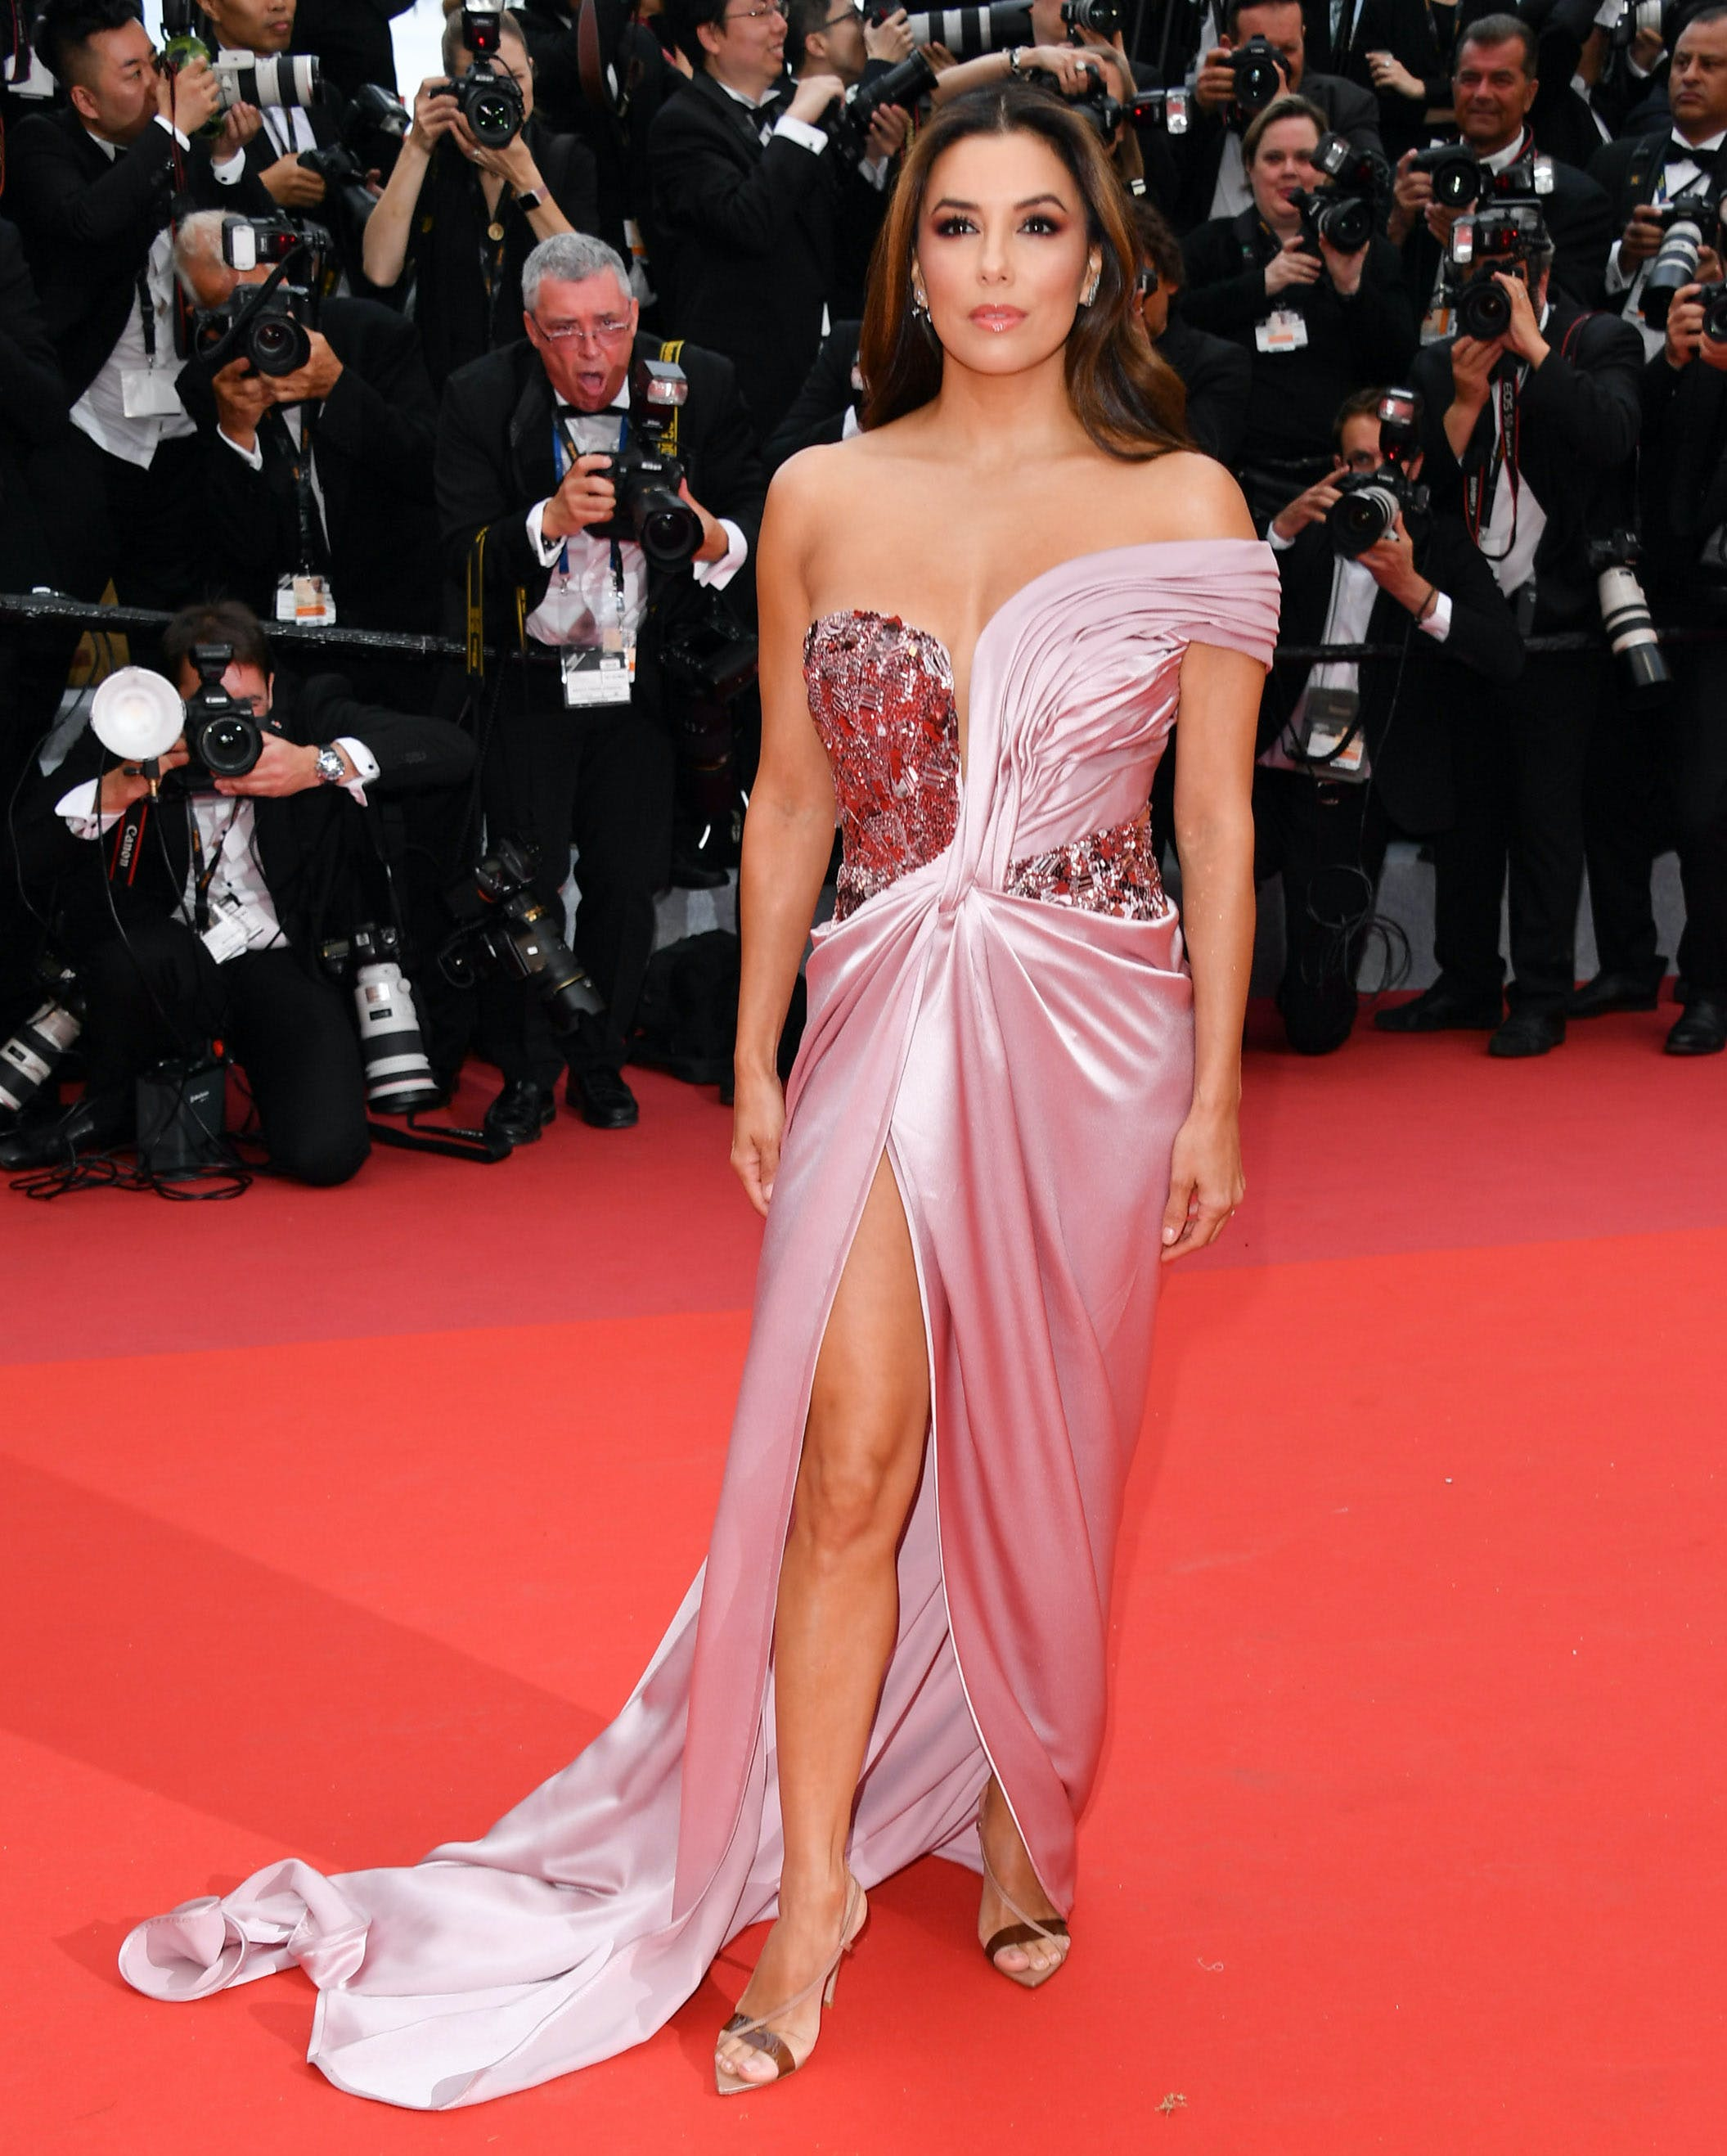 Eva Longoria at the 72nd annual Cannes Film Festival